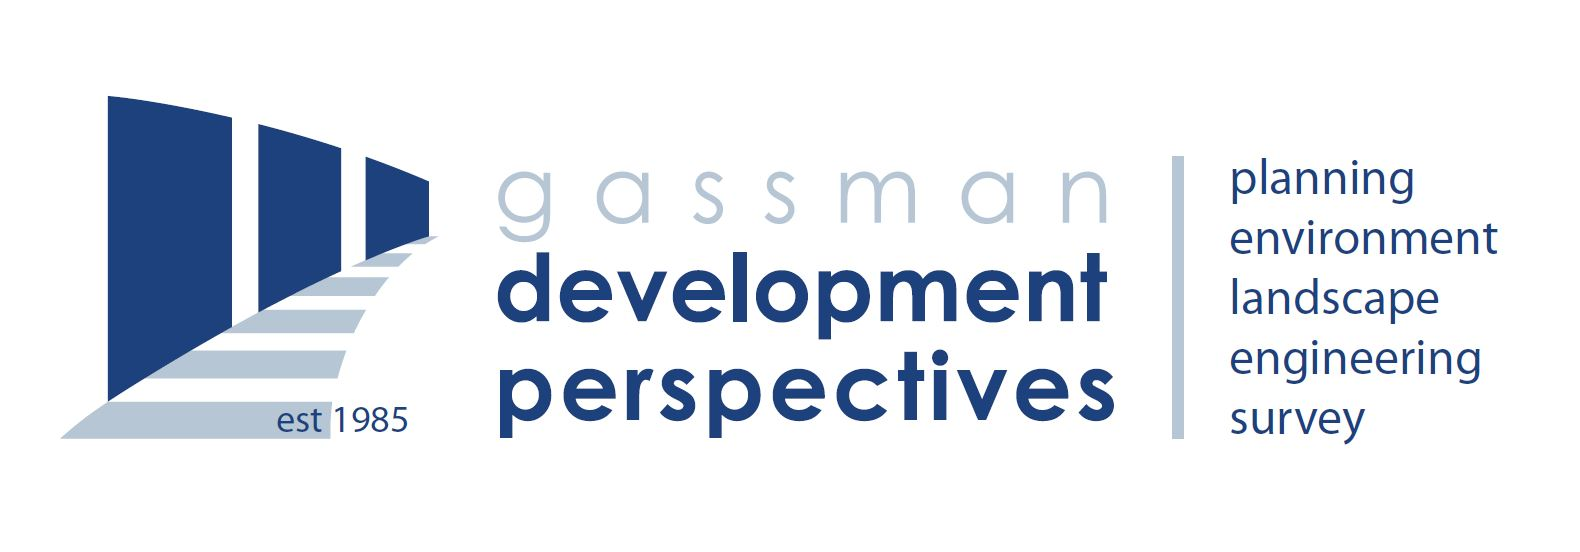 Gassman Development Perspectives 2019.JPG